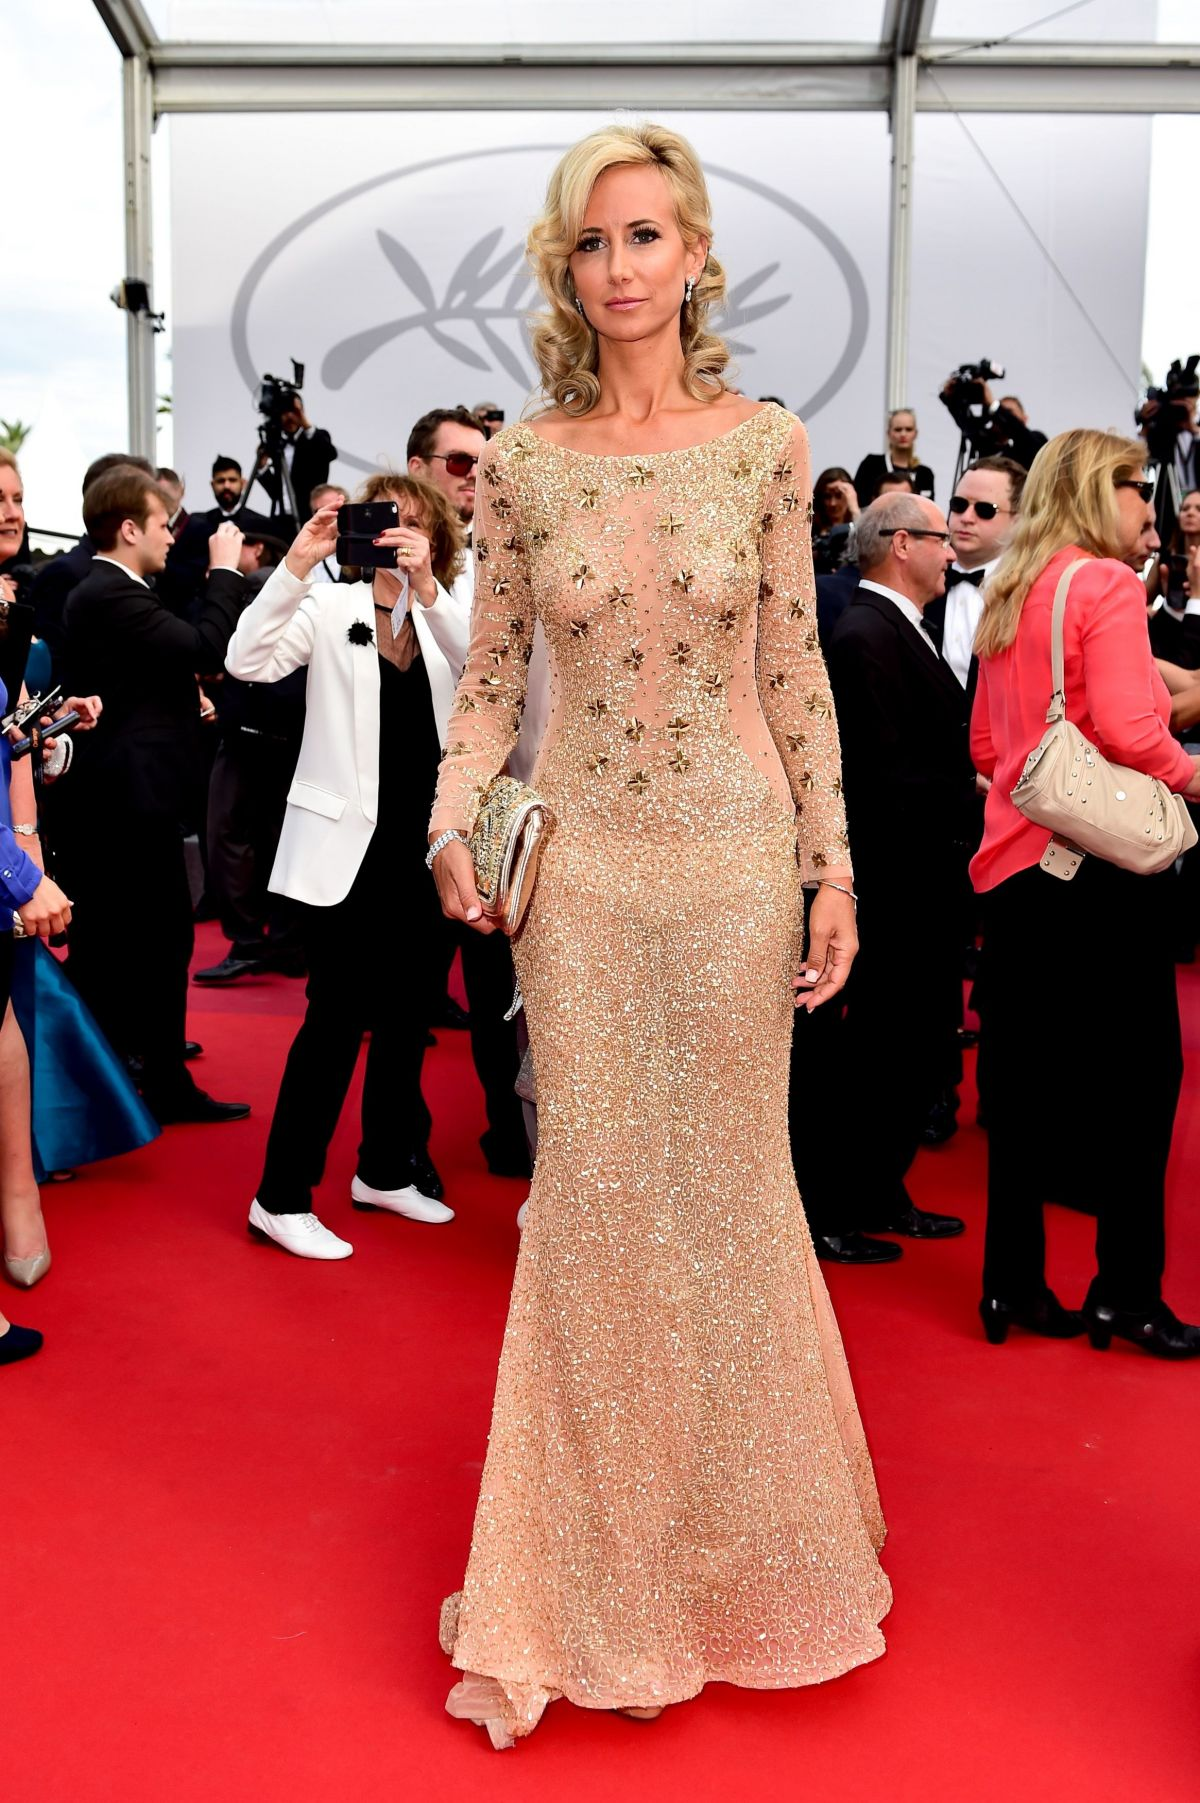 Cannes 2017 Heidi Klum Continues A Cannes Tradition In: LADY VICTORIA HERVEY At Loveless Premiere At 2017 Cannes